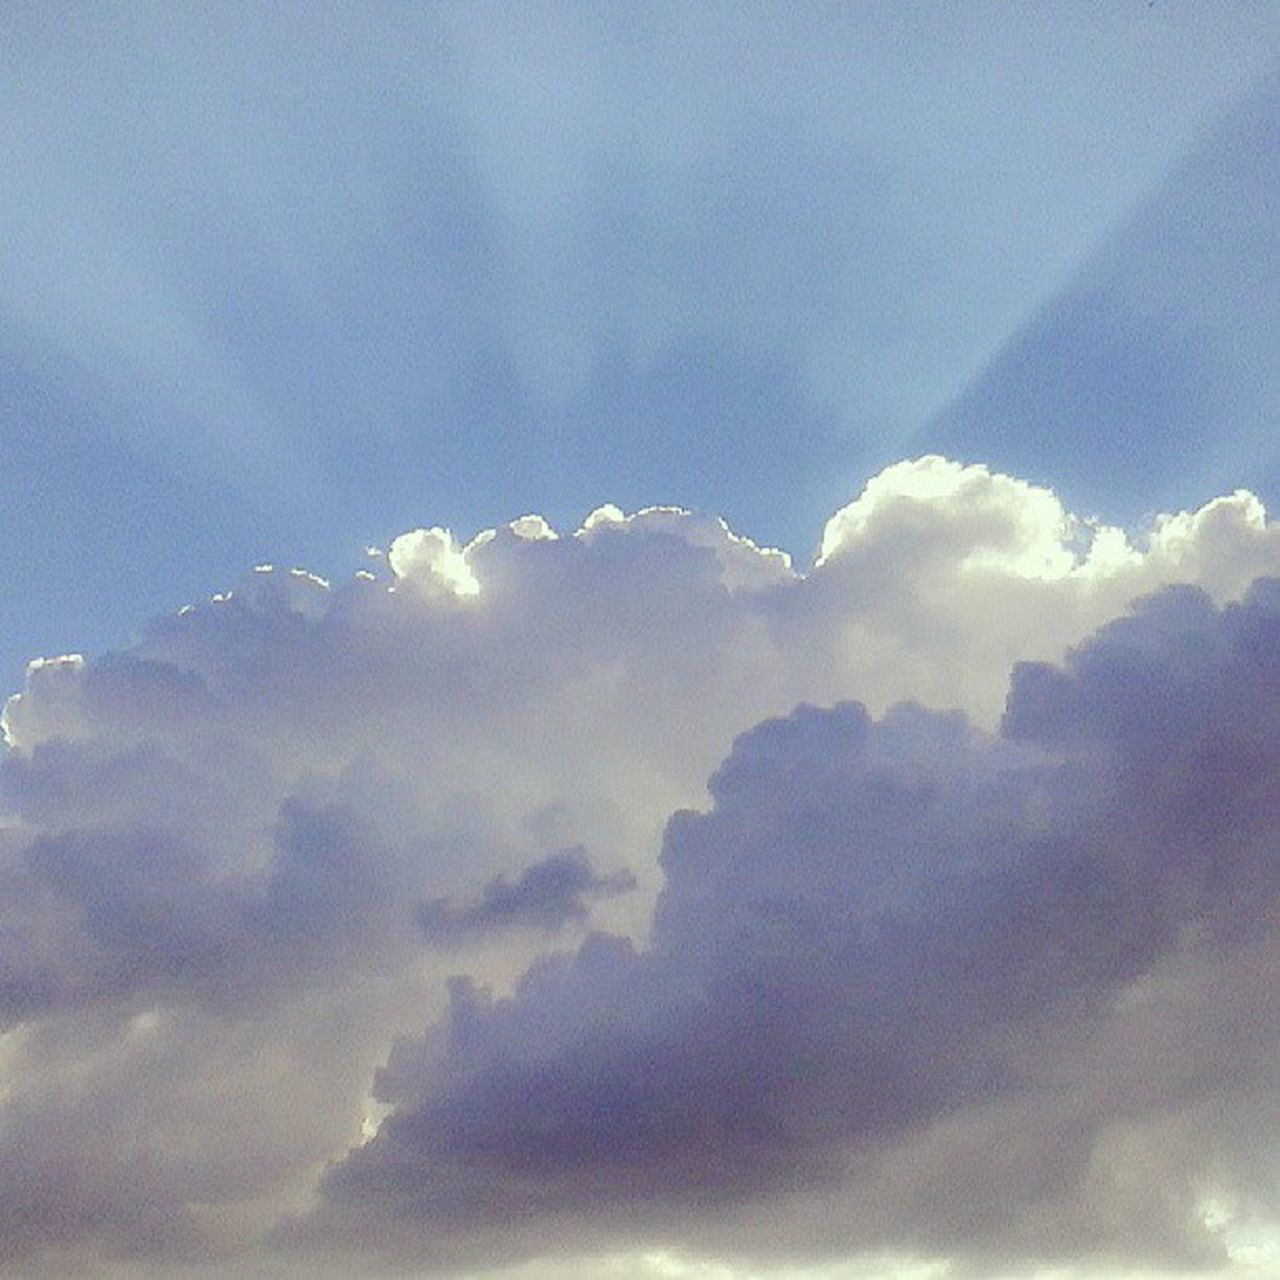 cloud - sky, nature, sky, beauty in nature, tranquility, no people, scenics, sky only, outdoors, day, low angle view, backgrounds